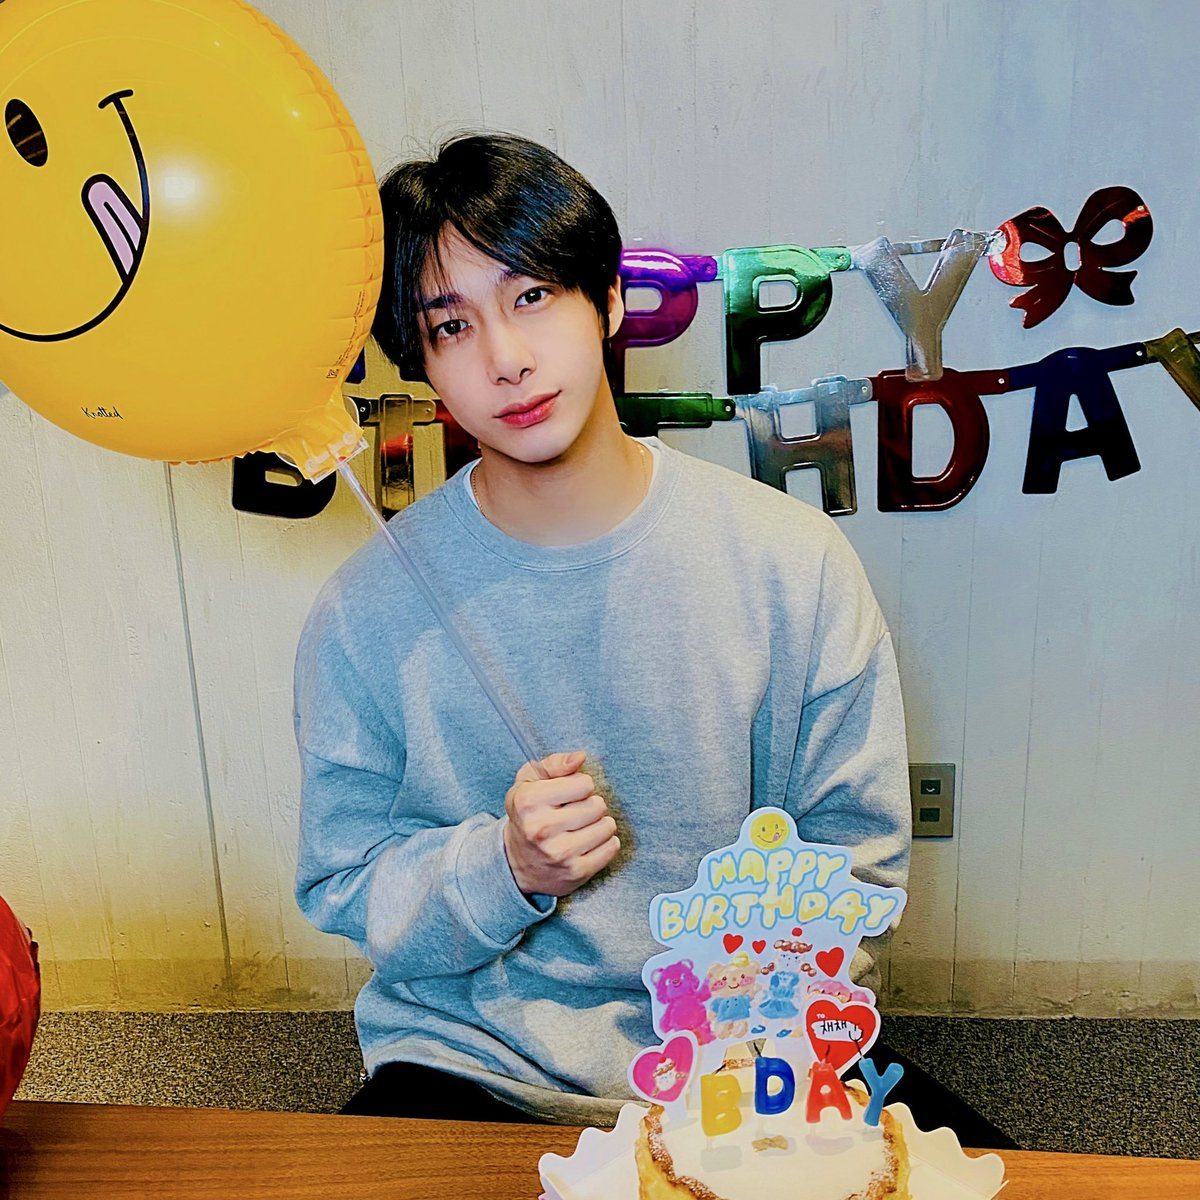 Last minutes in my time zone I wanted this screenshot for my personal calendar that design for myself But Thank you for HD quality Hyungwon 😘 And HBD  #HBDtoHYUNGWON #형원이란_다정함이_내린_날 @OfficialMonstaX